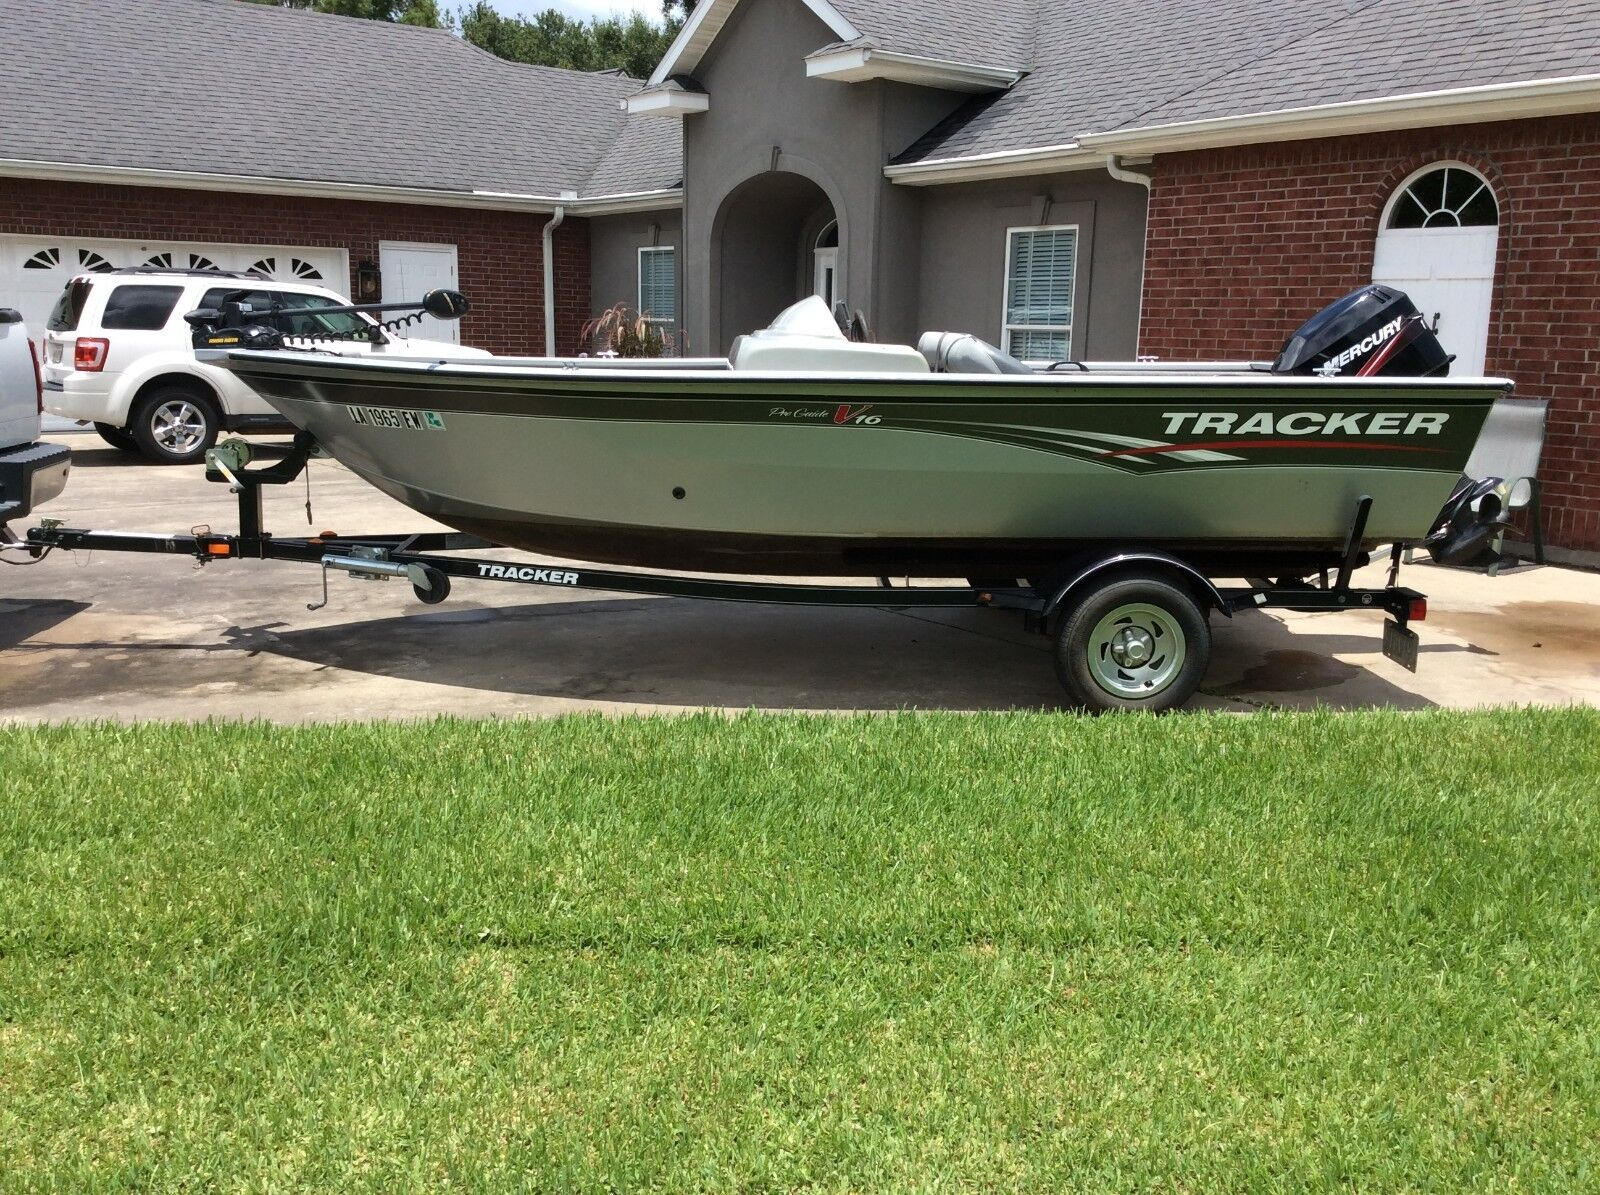 Lake Charles Toyota >> Bass Tracker Proguide V16 Mercury Outboard Aluminum Welded Trailer - Used Tracker Proguide for ...